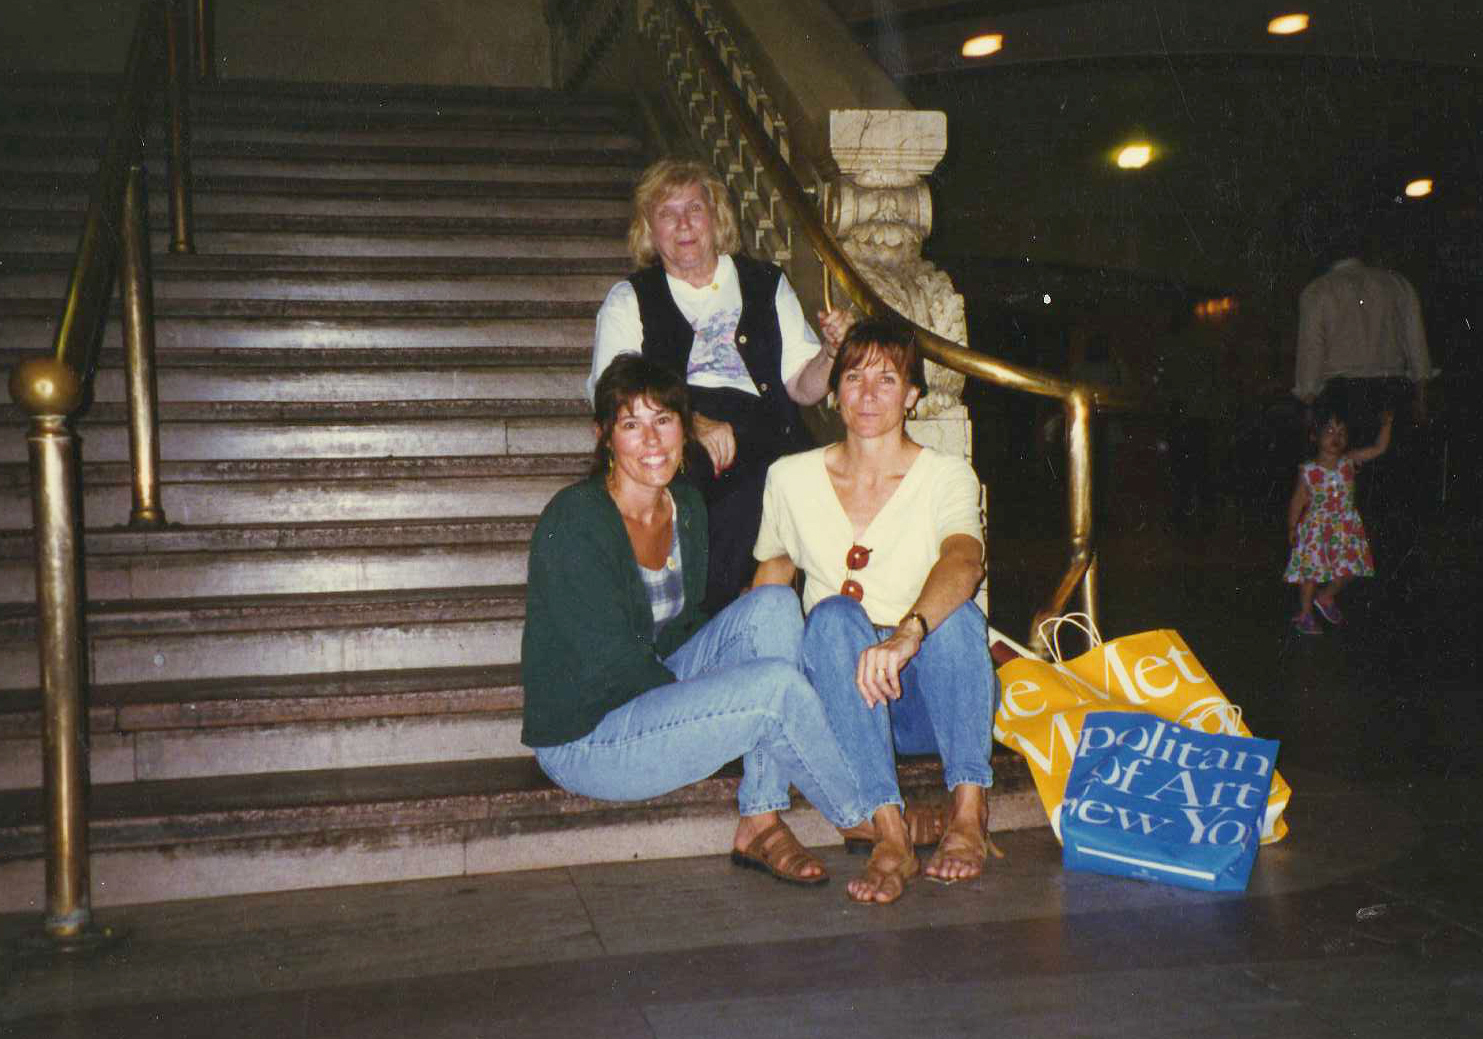 Shirley Carol & I in Grand Central Sta NY 1996 maybe